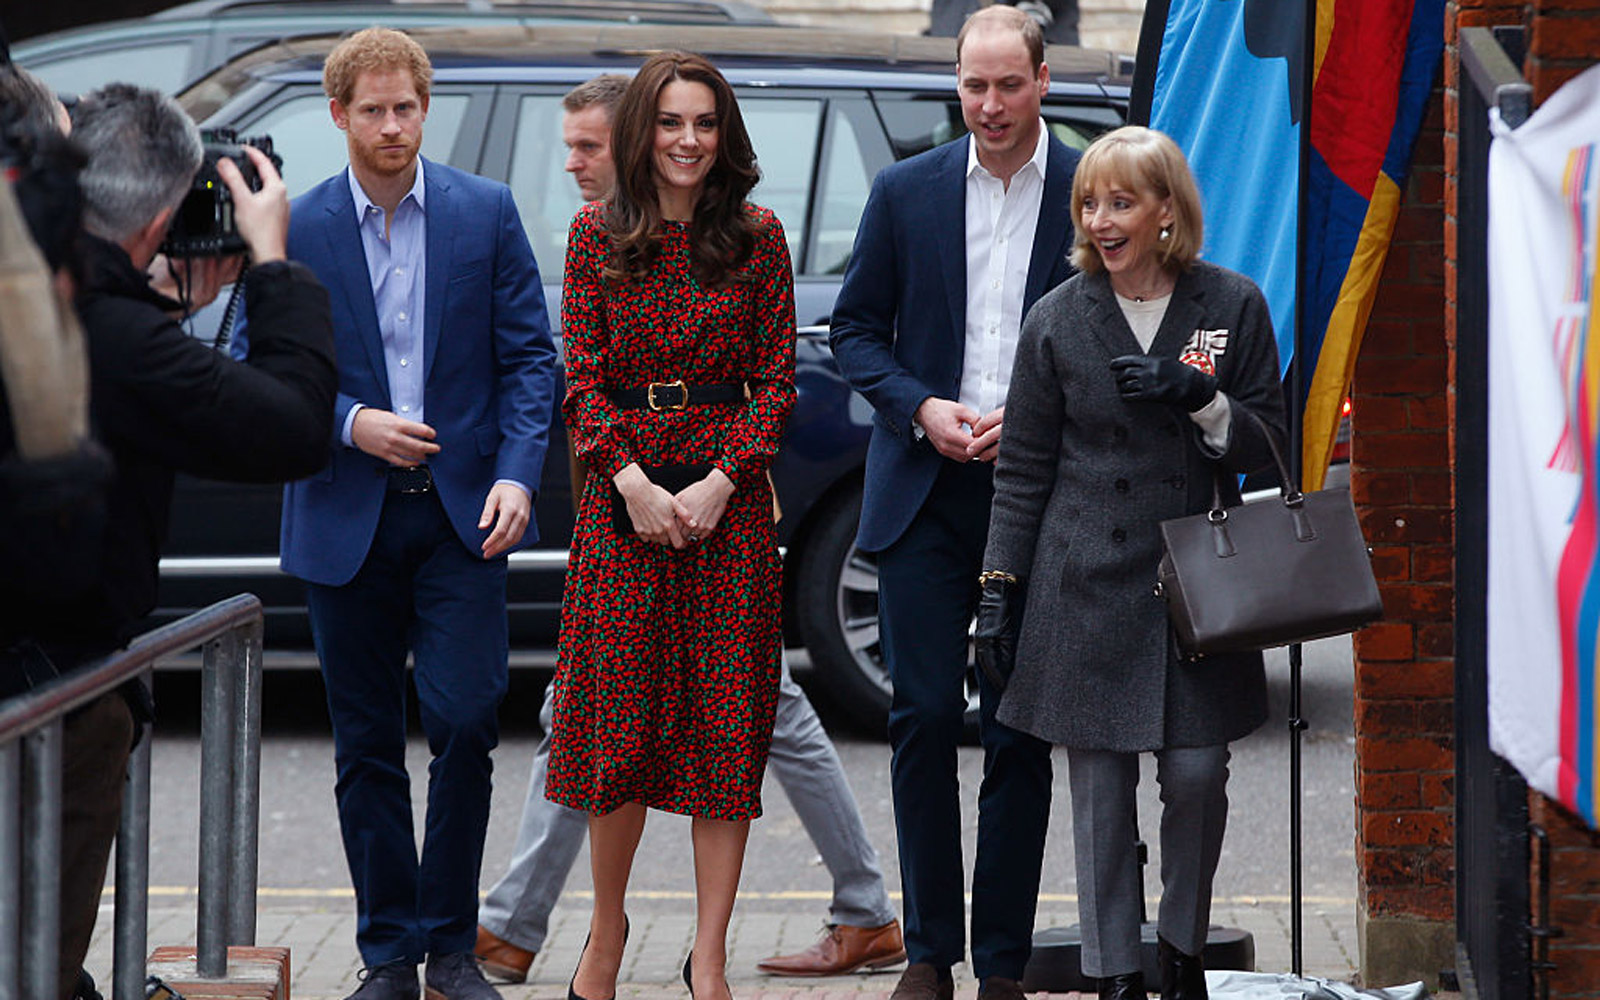 LONDON, ENGLAND - DECEMBER 19:  (L-R) Prince Harry, Catherine, Duchess of Cambridge and Prince William, Duke of Cambridge arrive to attend a Christmas party for volunteers at The Mix youth service on December 19, 2016 in London, England.  The Mix youth se